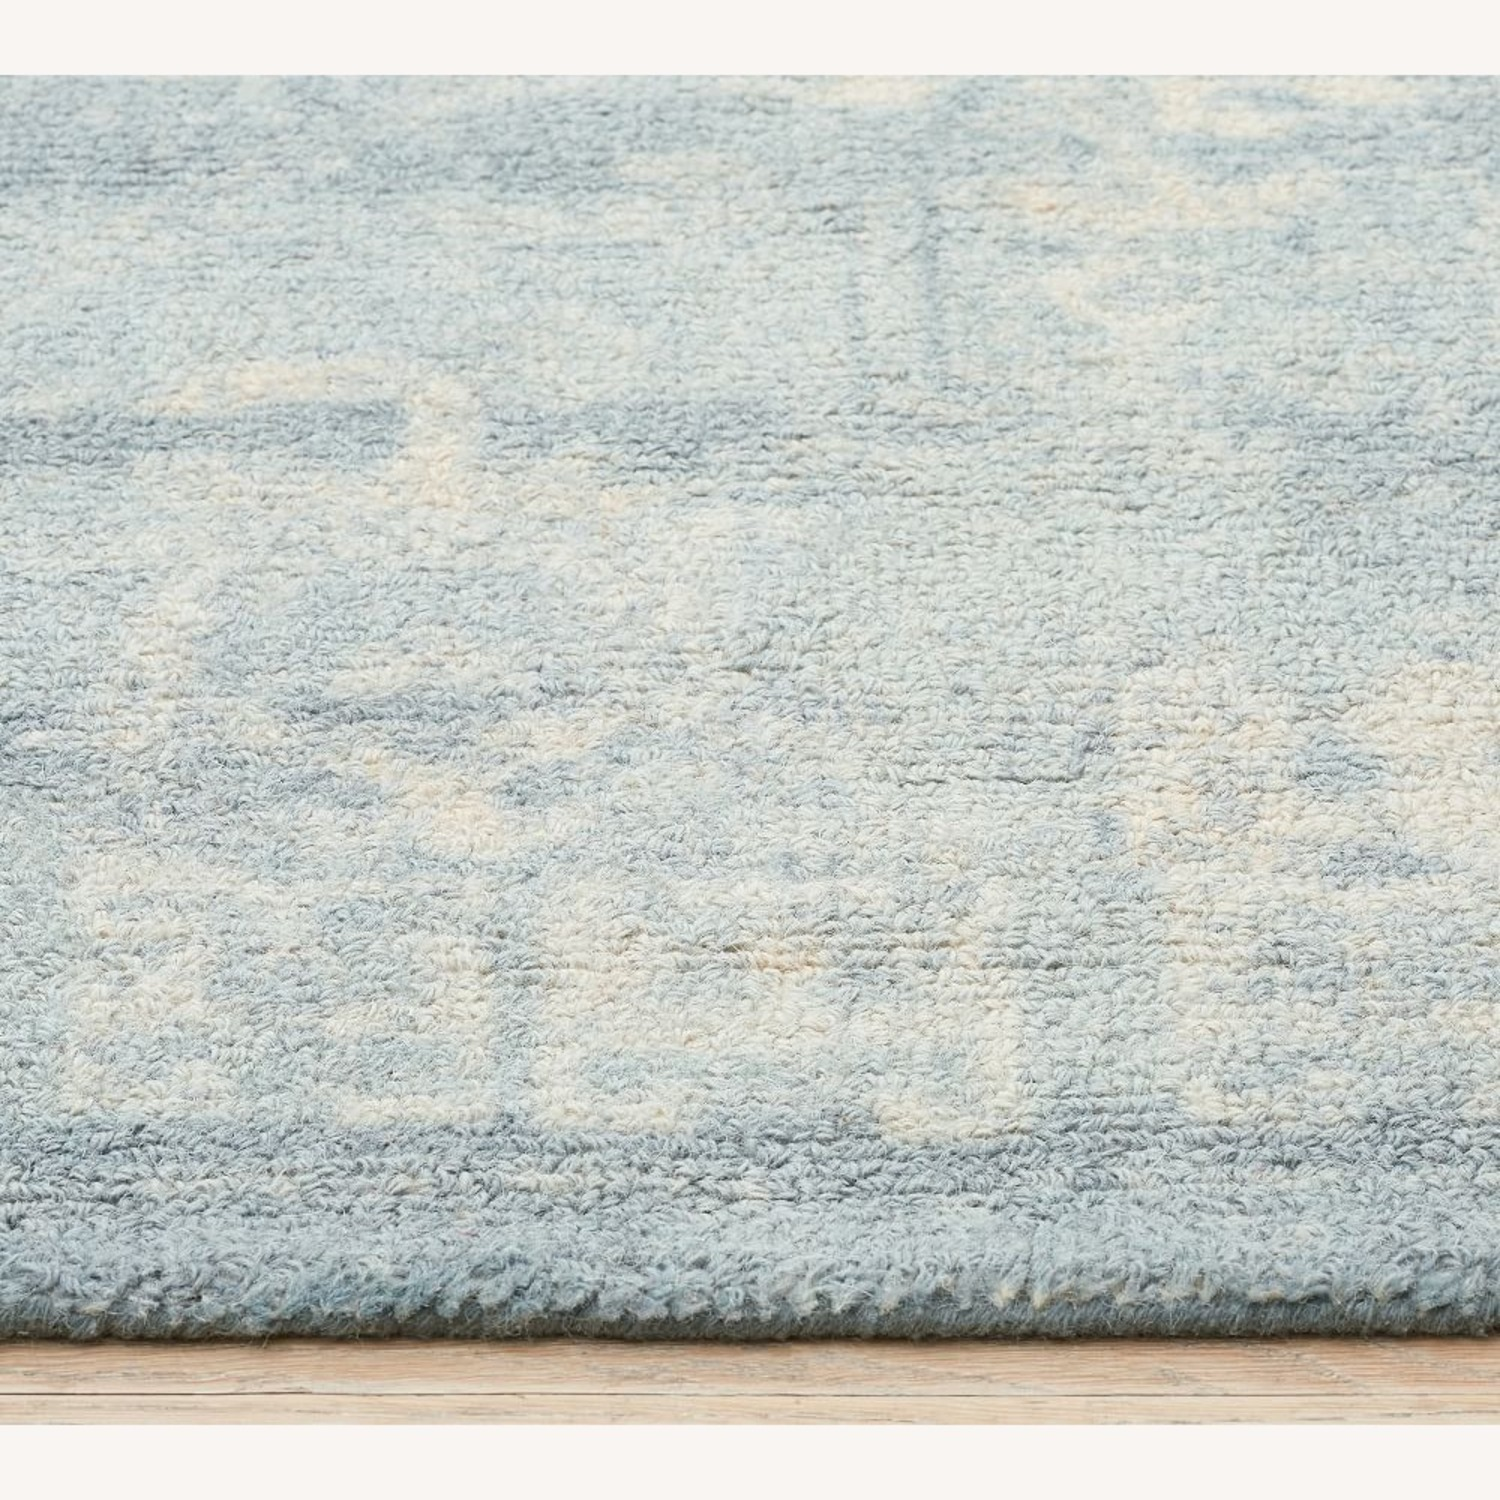 Pottery Barn Gabrielle Handtufted Wool Rug , 3 x 5 - image-1